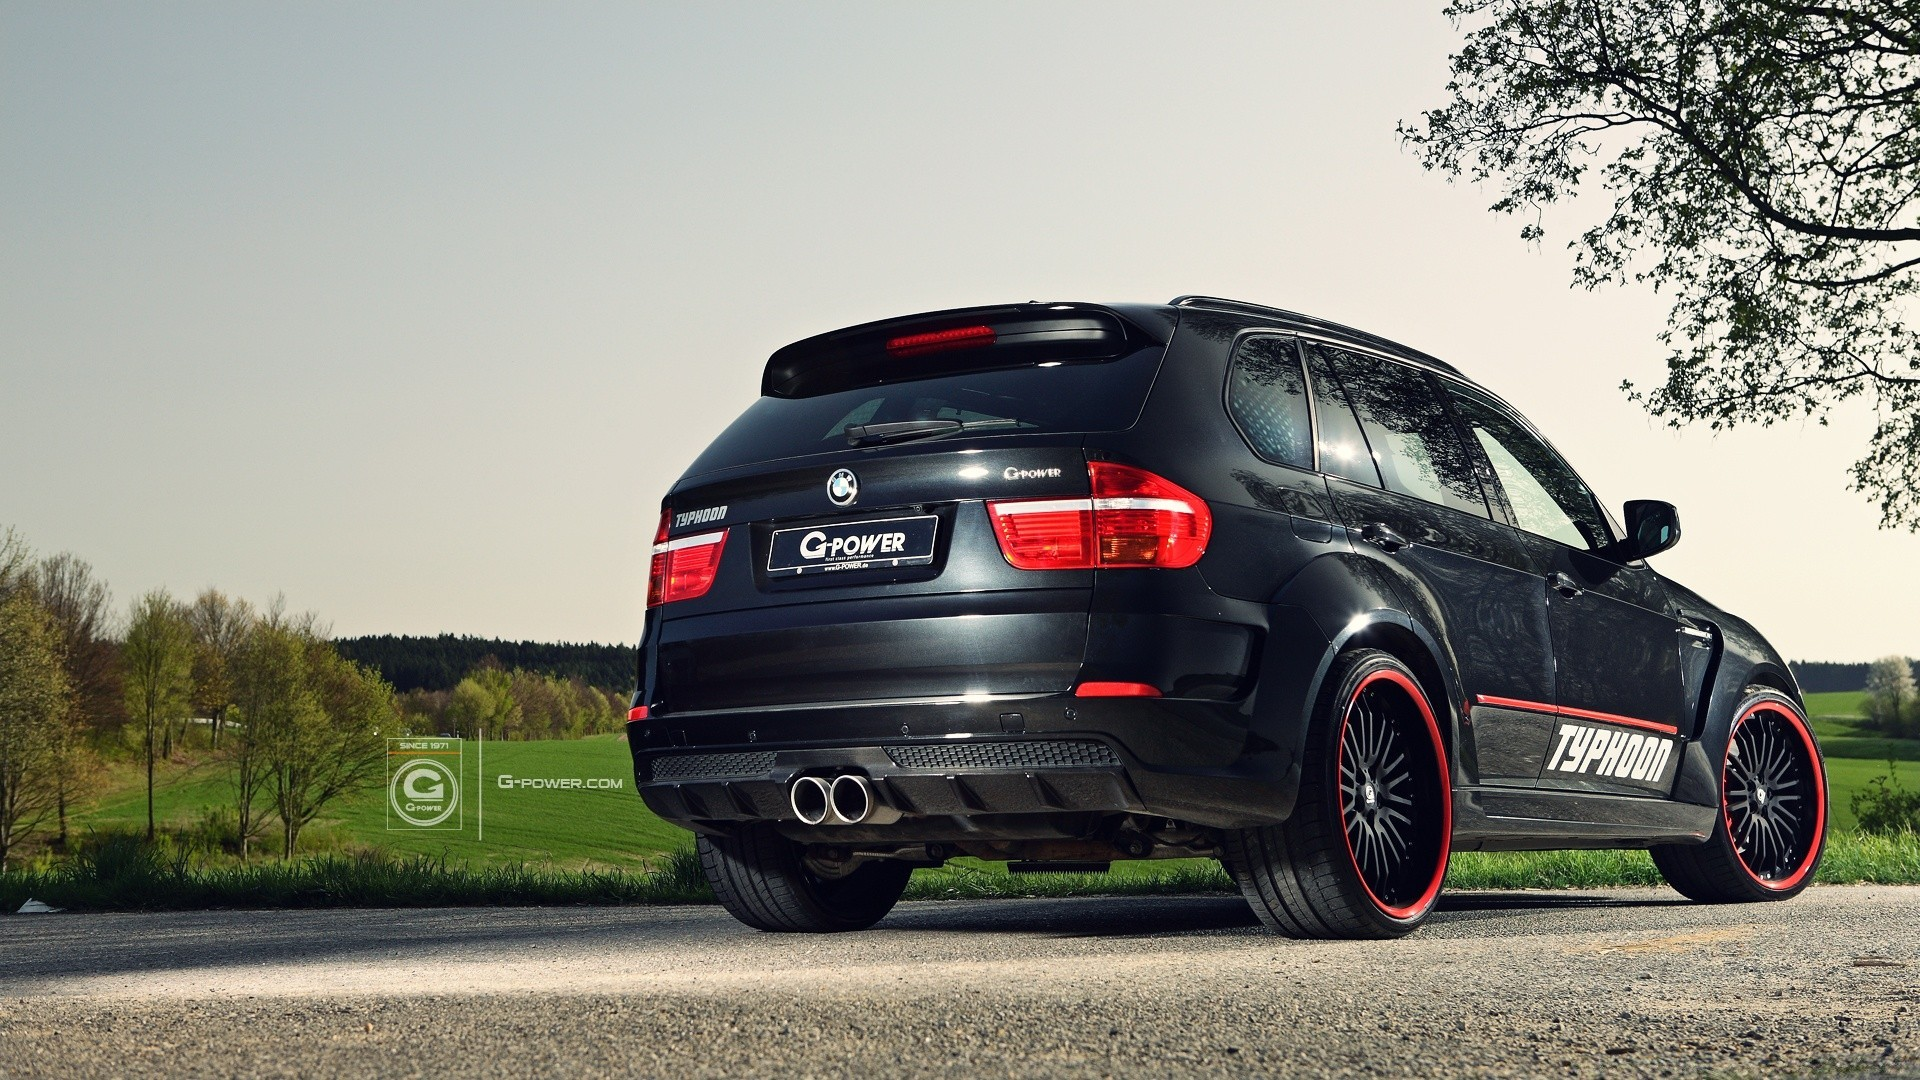 G-Power Typhoon x5m